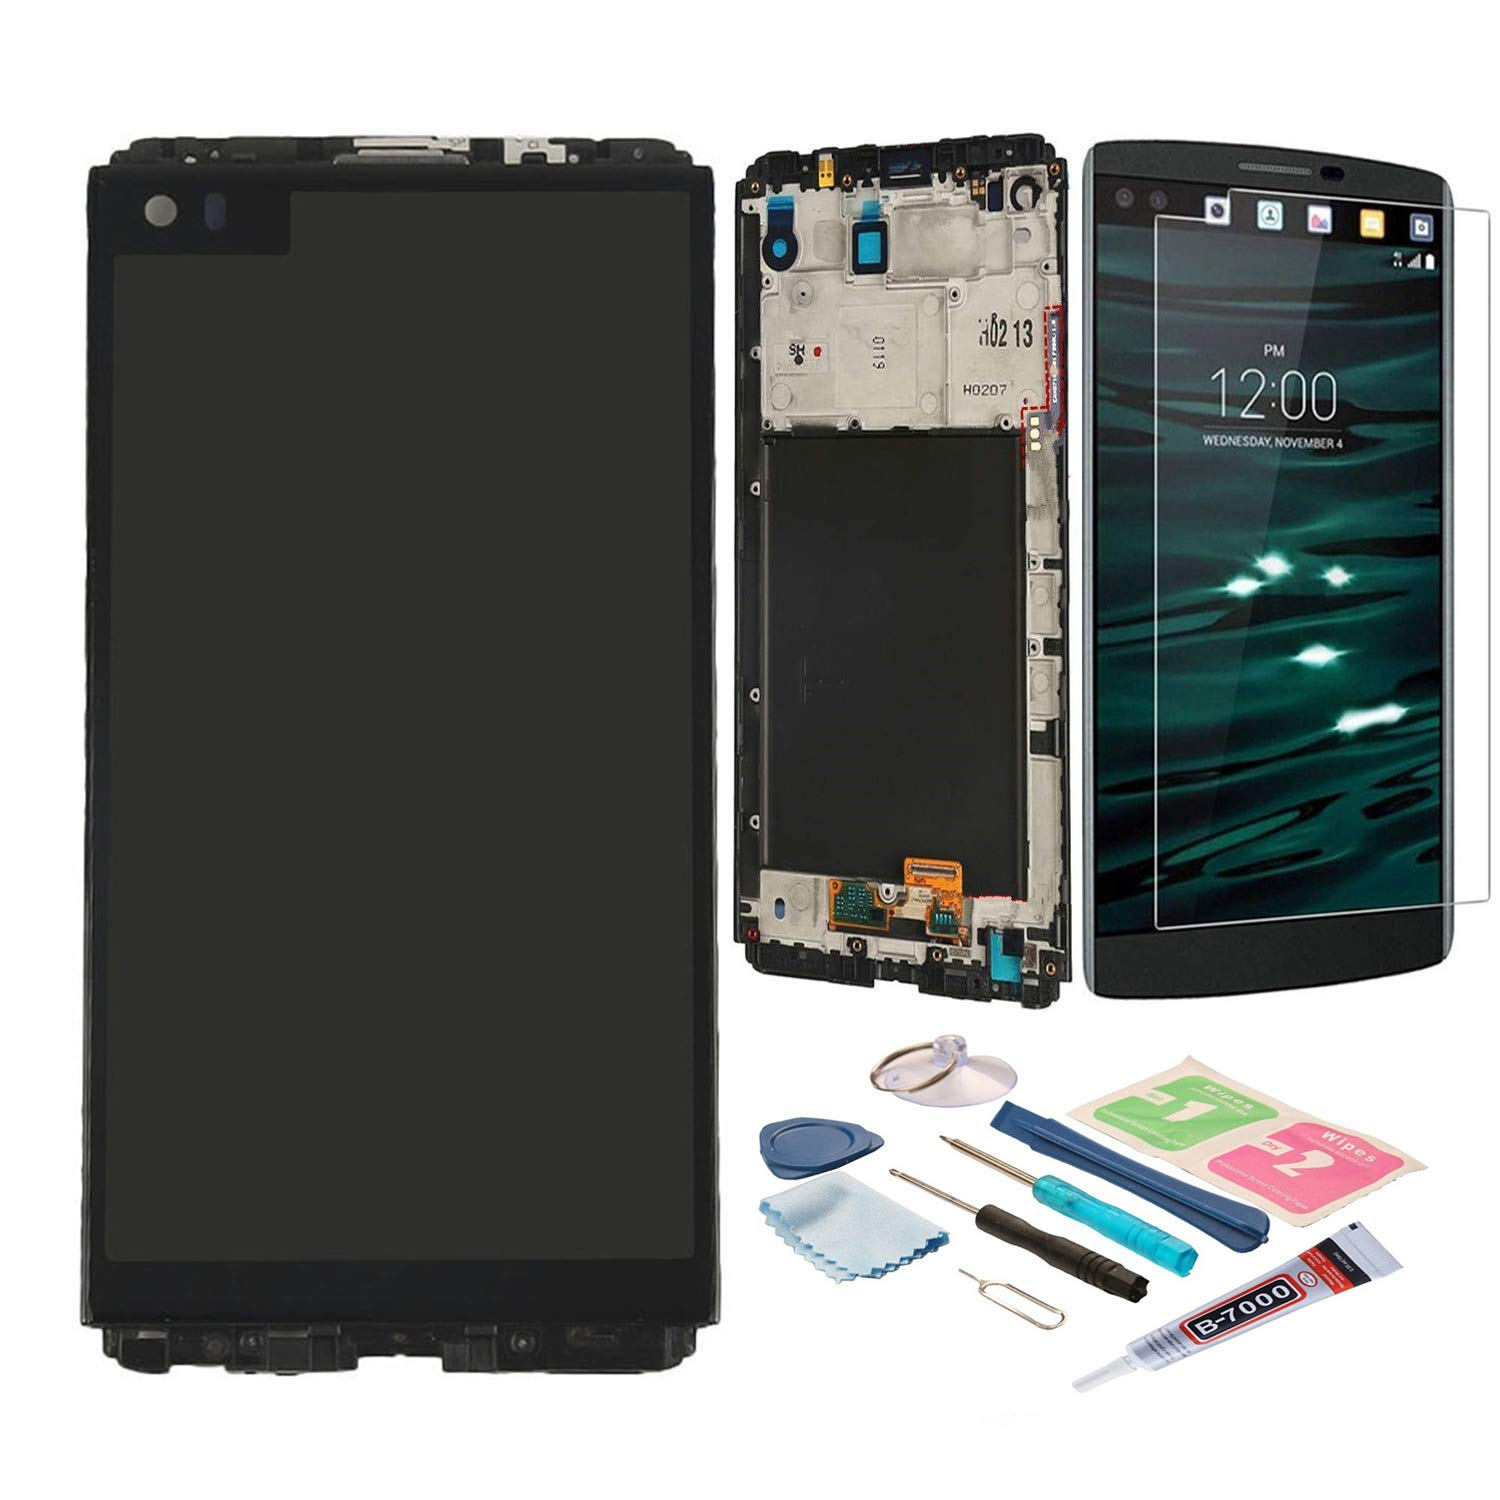 XR MARKET Compatible LG V20 Screen Replacement, LCD Display Touch Screen Glass Digitizer Assembly, for LG LS997 US996 VS995 H918 H990 H910 H915 H990DS H990TR F800L(Black W/Frame) by XR MARKET